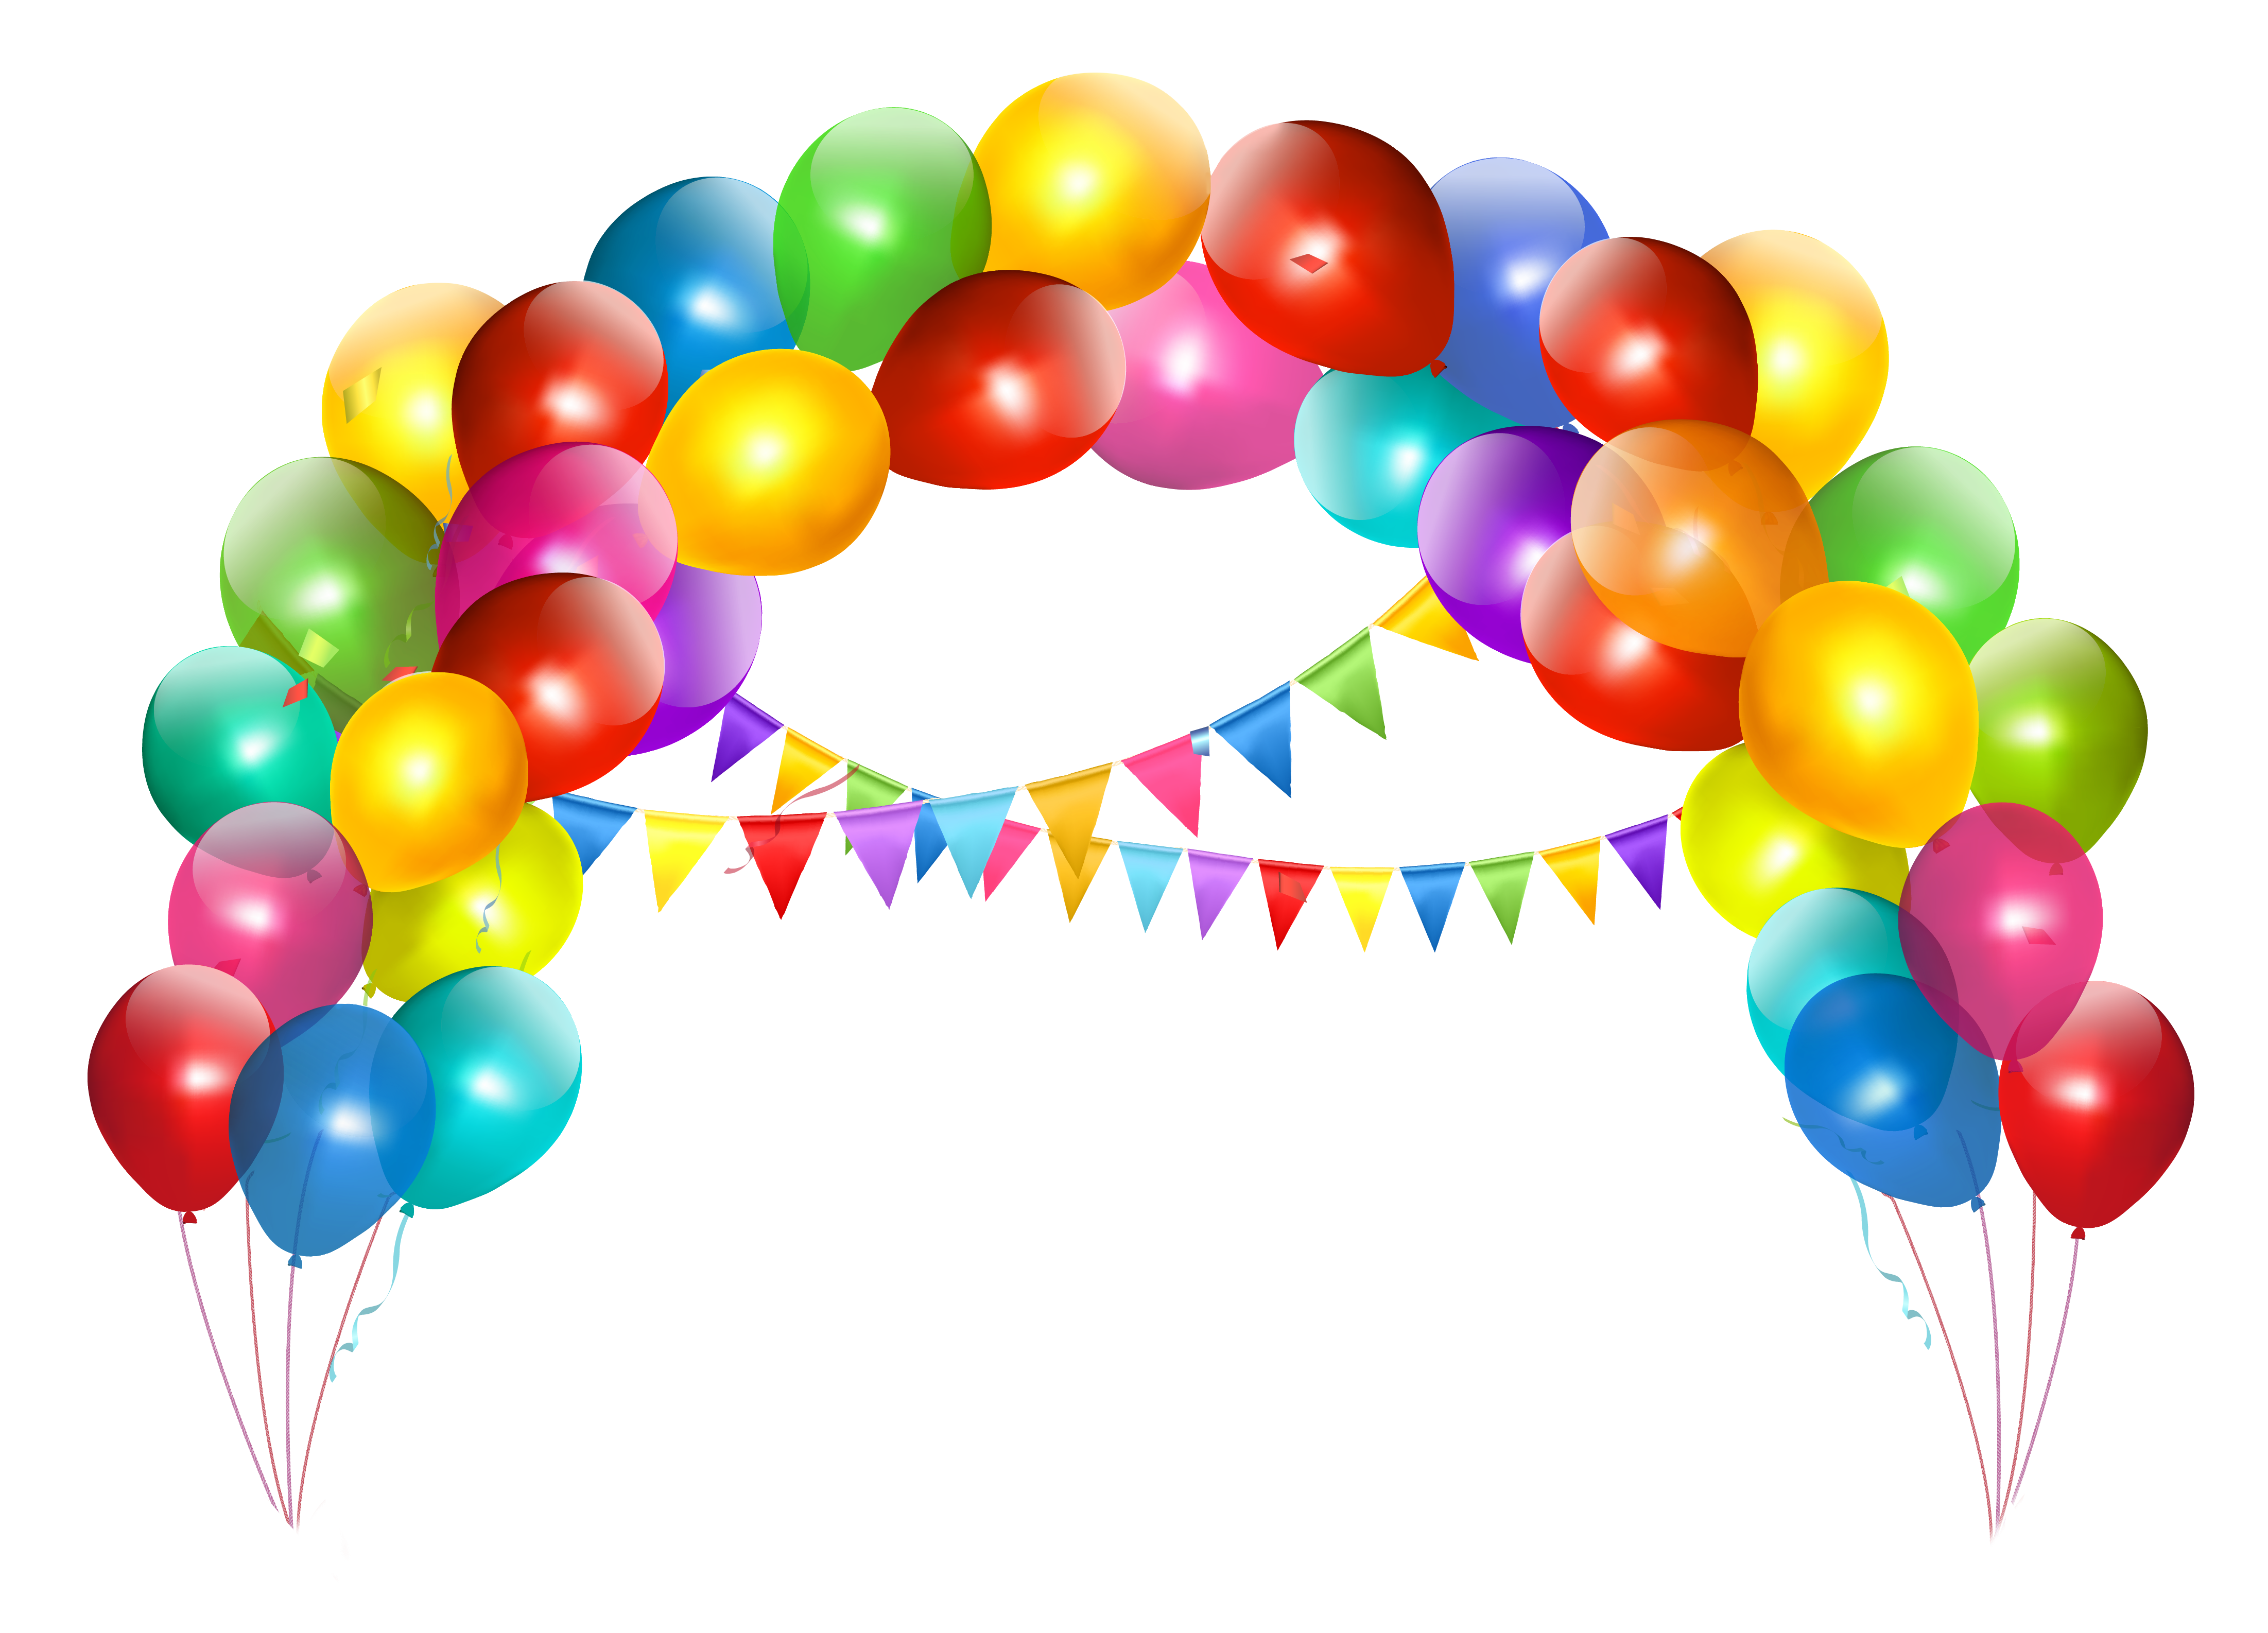 Transparent lacalabaza clip art. Clipart balloons clear background